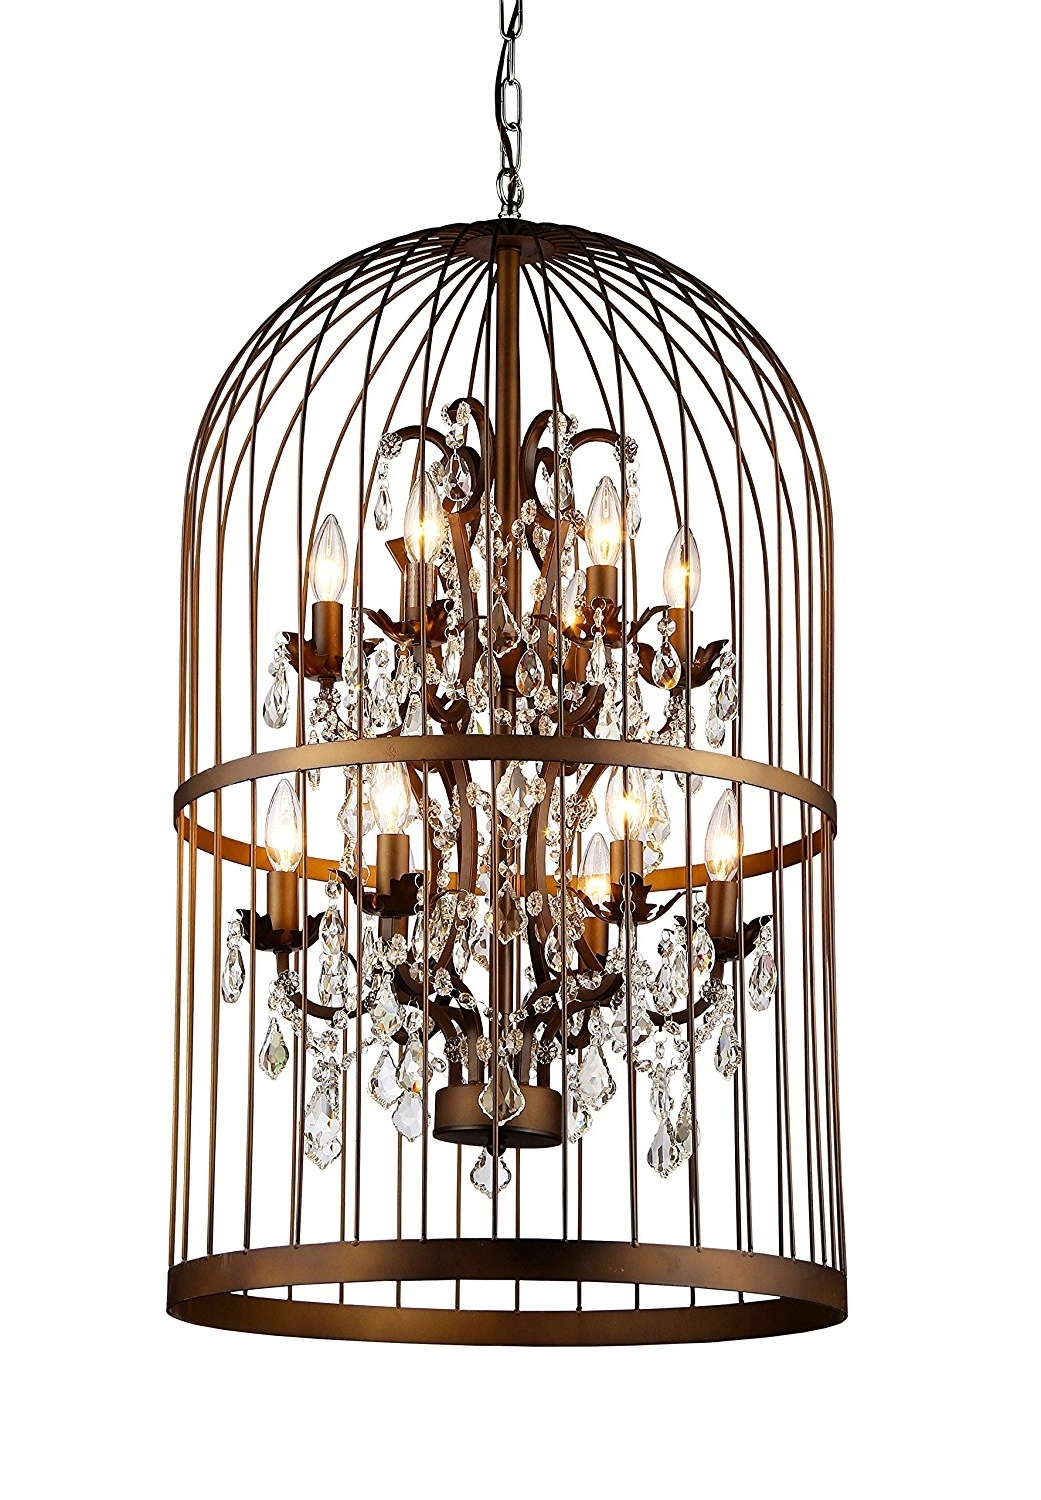 Whse Of Tiffany Rl8058B Rinee Cage Chandelier – – Amazon Regarding Newest Cage Chandeliers (View 14 of 15)